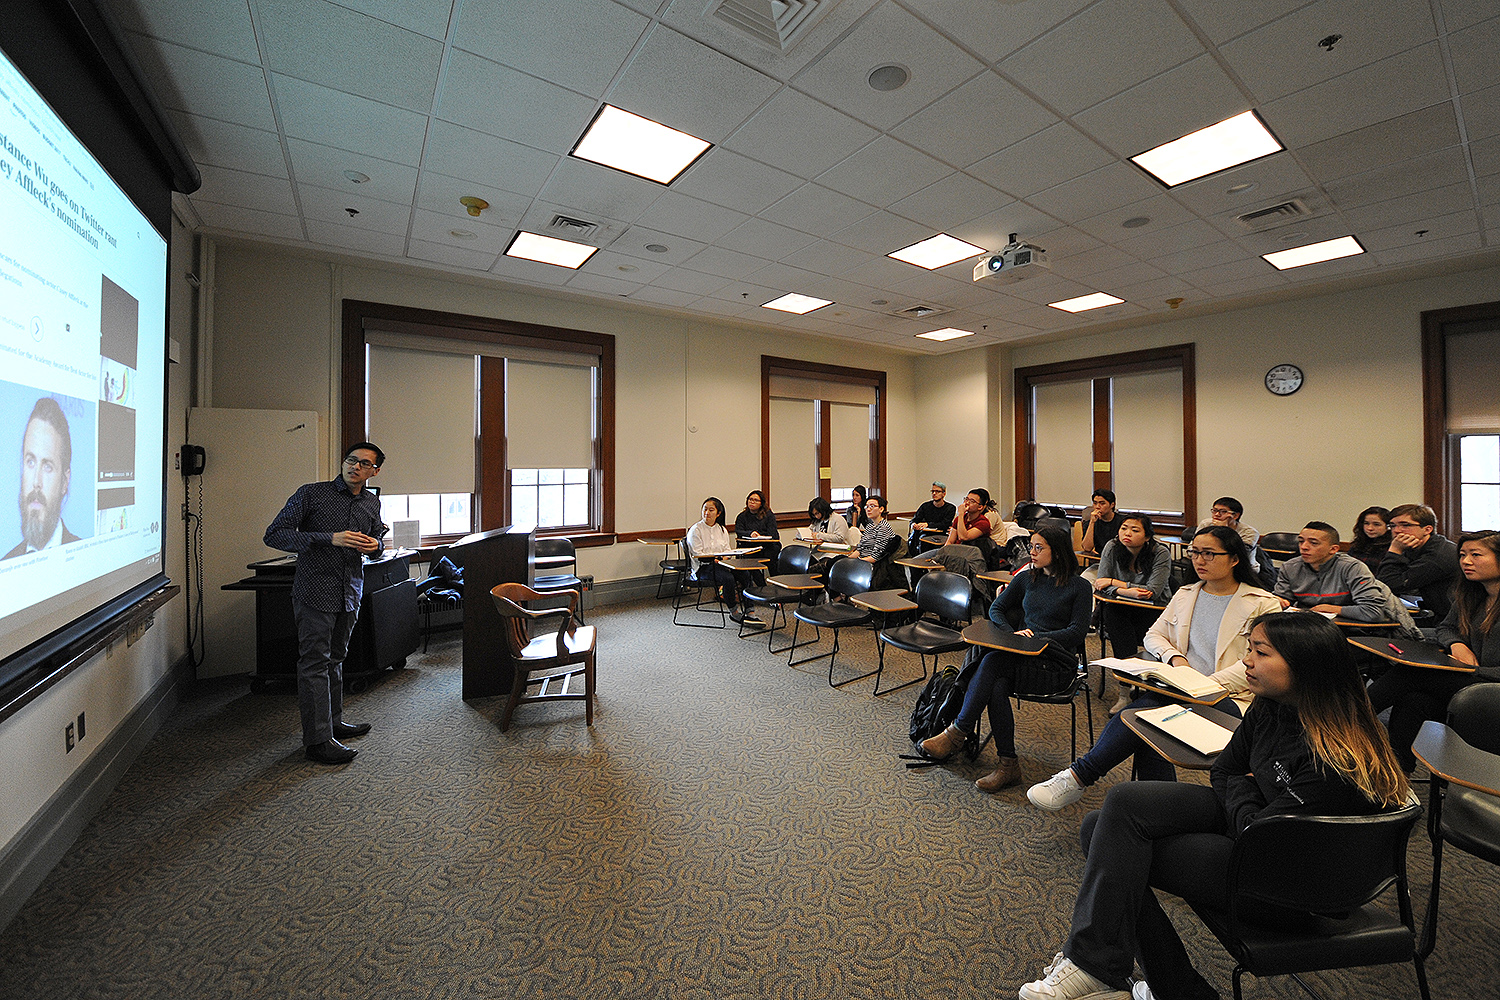 Long Bui, visiting assistant professor of American studies, teaches his AMST 220 Asian Americans and Pop Culture class on Jan. 27 in Fisk Hall, the first class of the Spring Semester. Throughout the semester, students will explore the history and experiences of Asian Americans through the site of popular culture, which includes films, comics, television, music and digital culture.